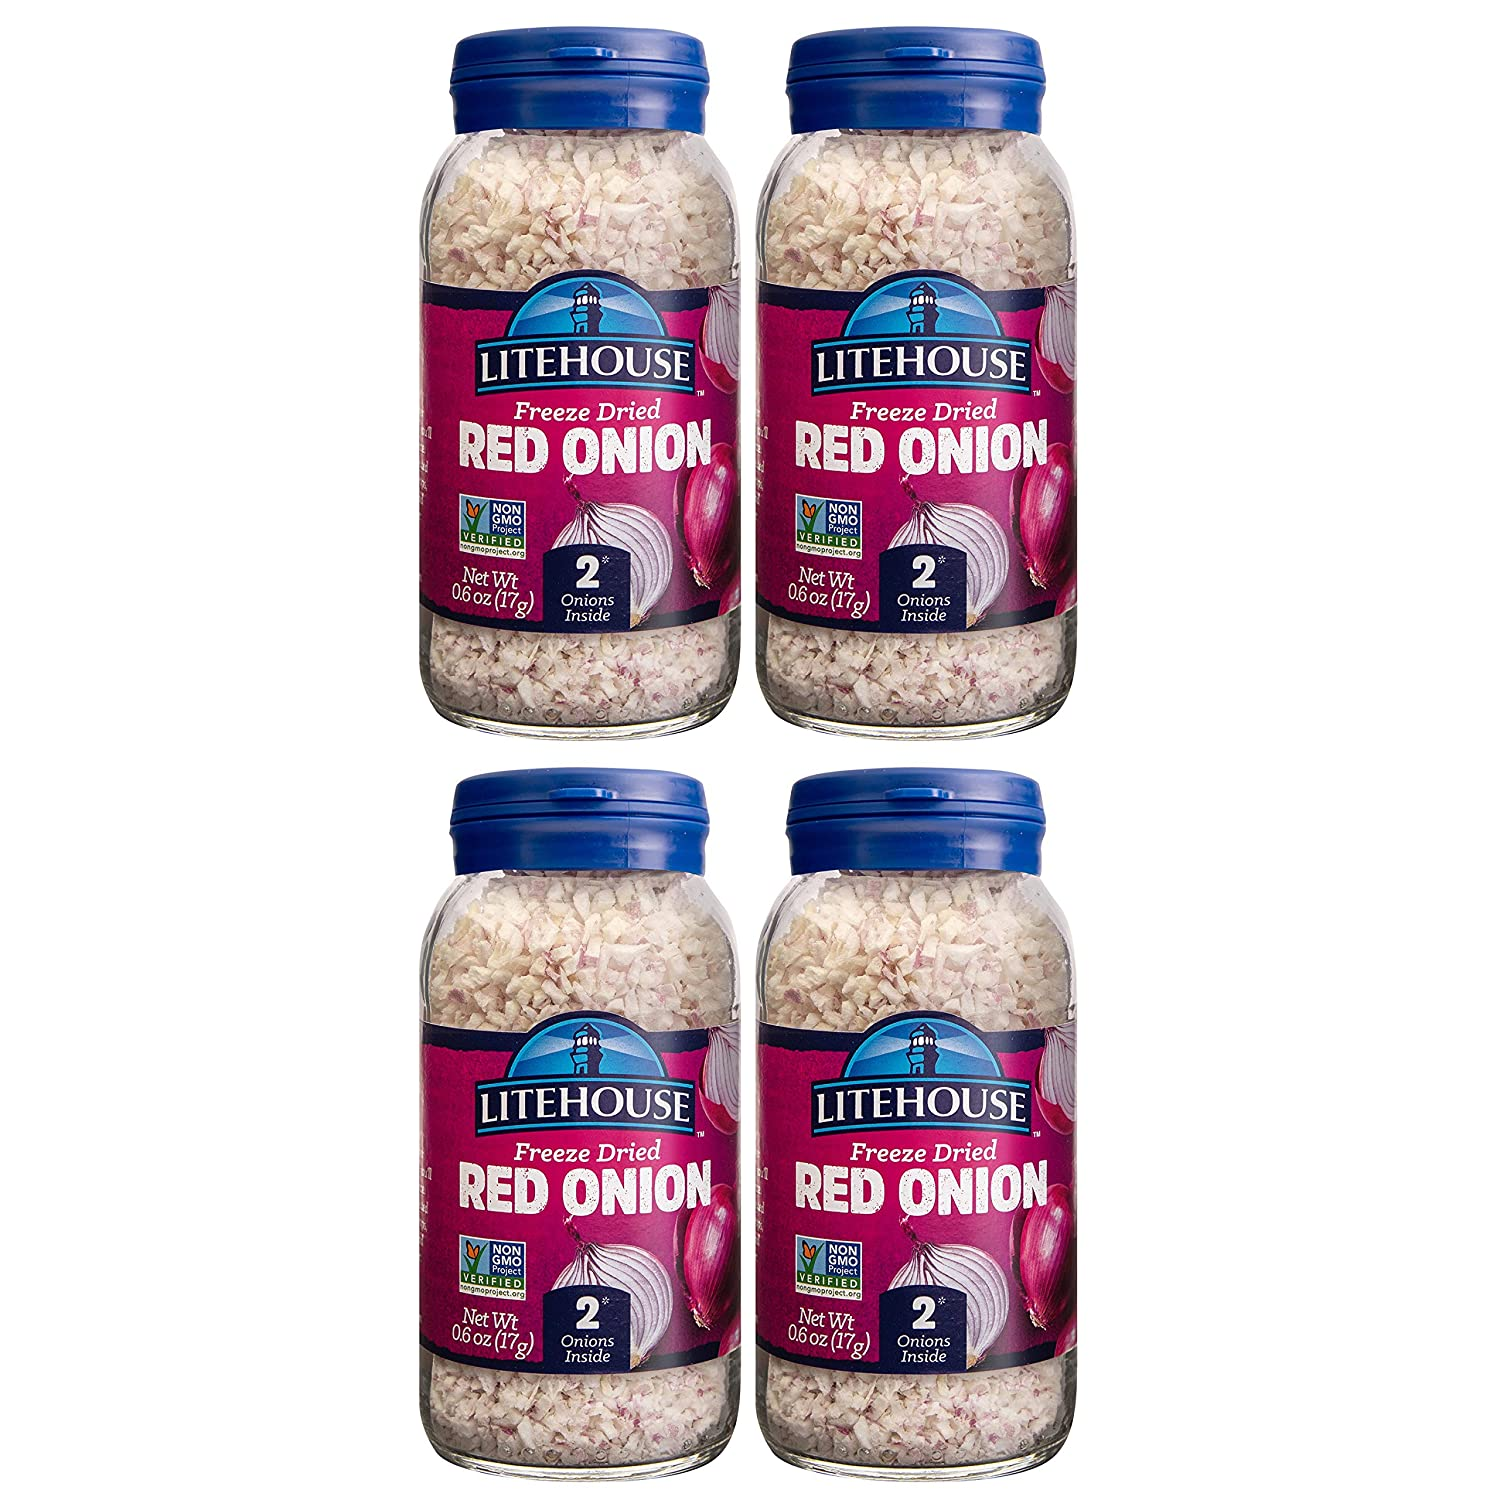 Litehouse Freeze Dried Red Onion, 0.6 Ounce, 4-Pack